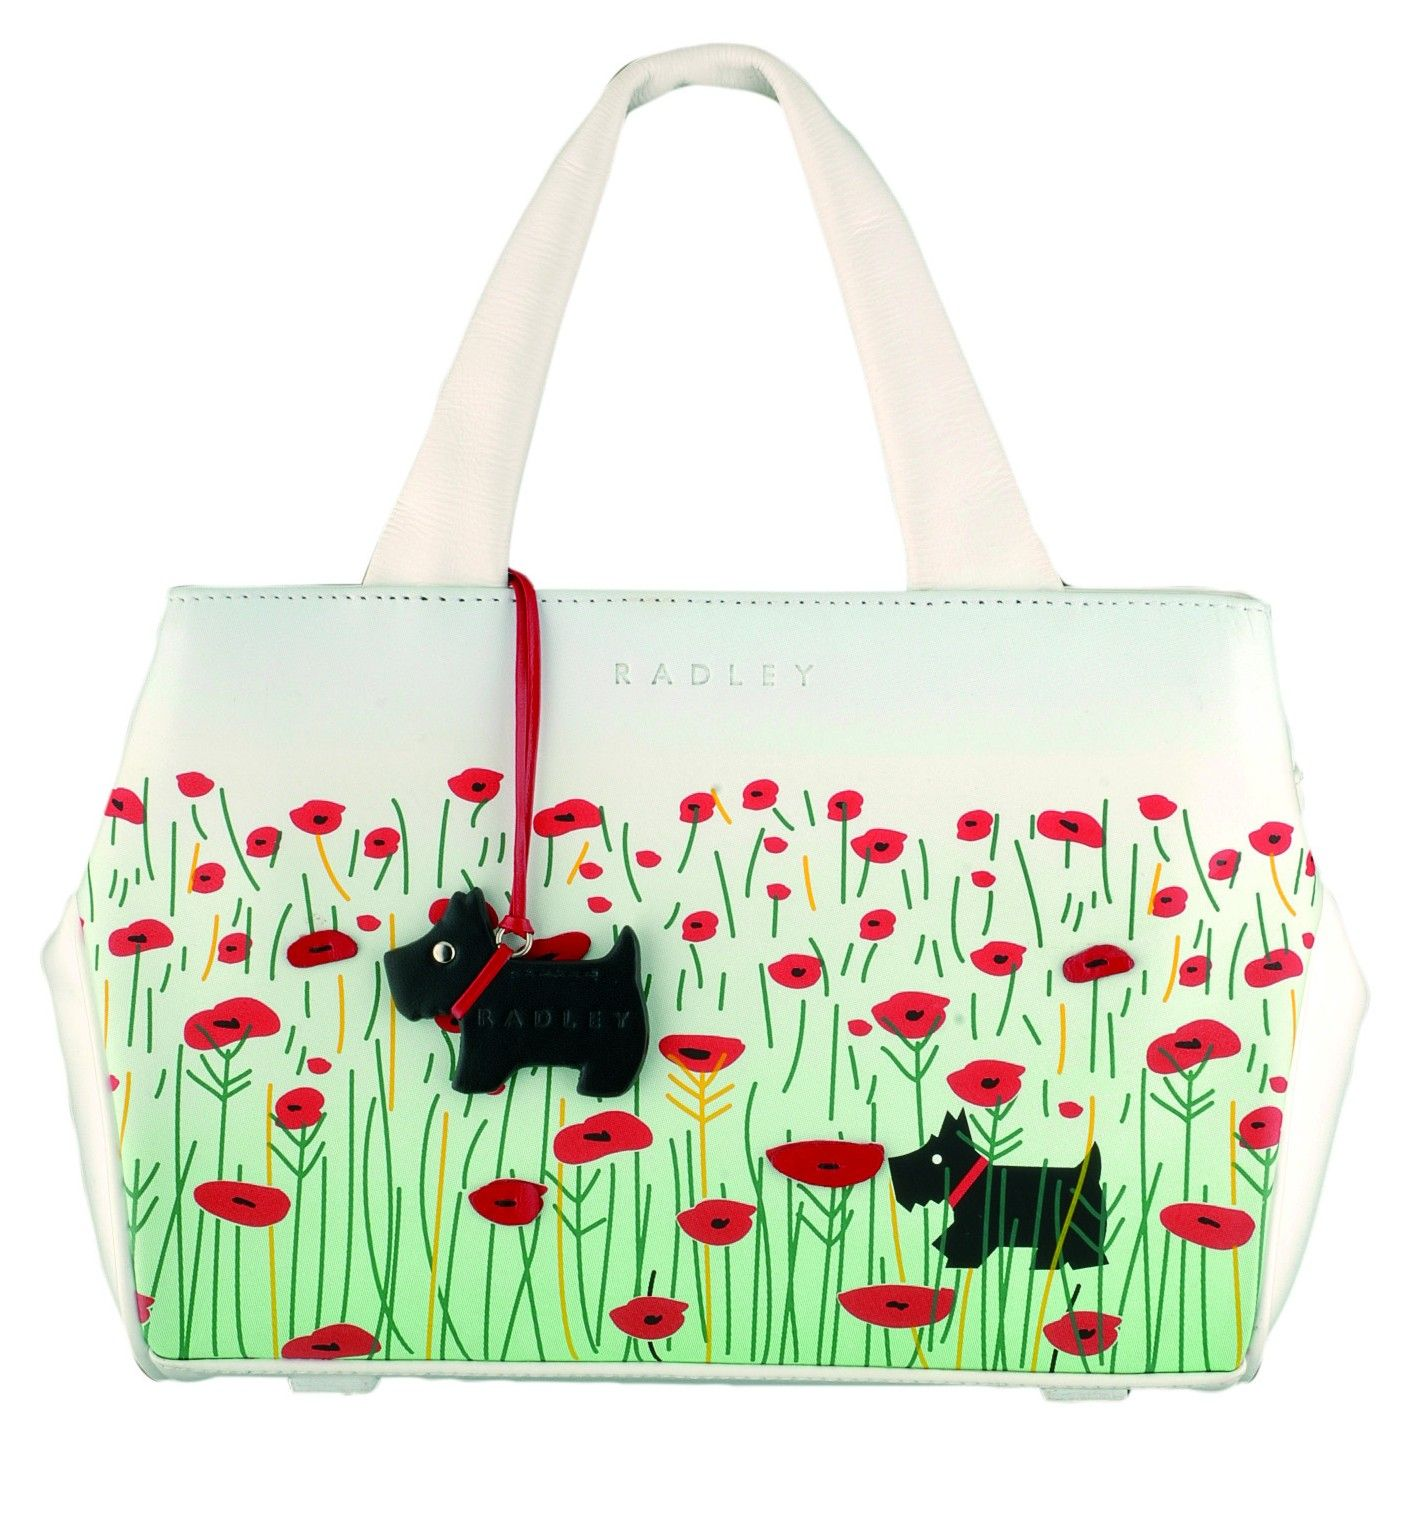 Radley Poppyfield Grab Bag This Lovely Poppy Design Is Por With Collectors